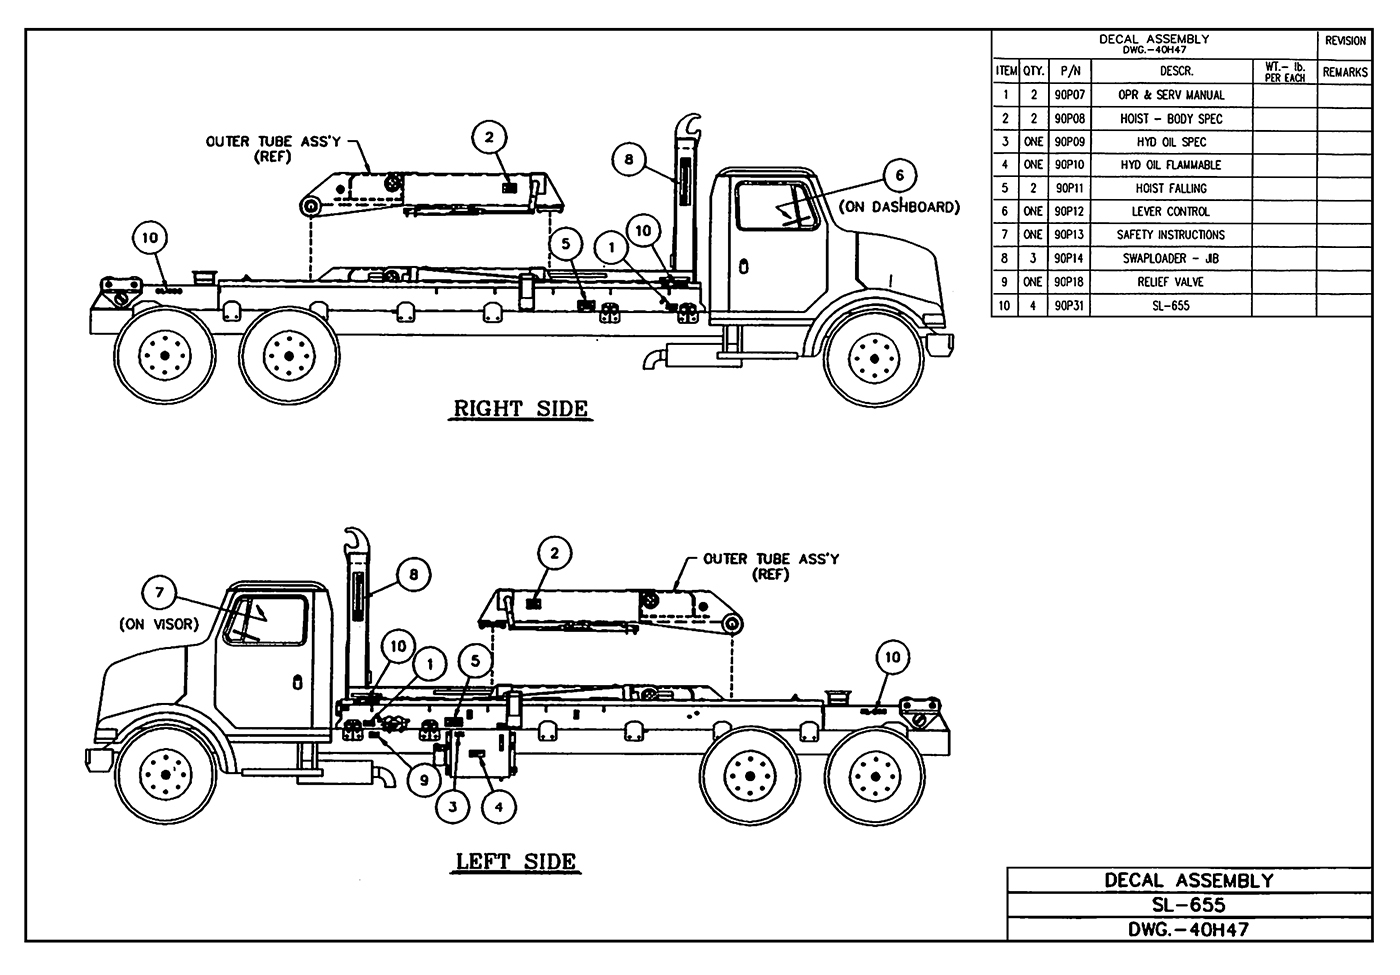 SL-655 Base Decal Assembly Diagram